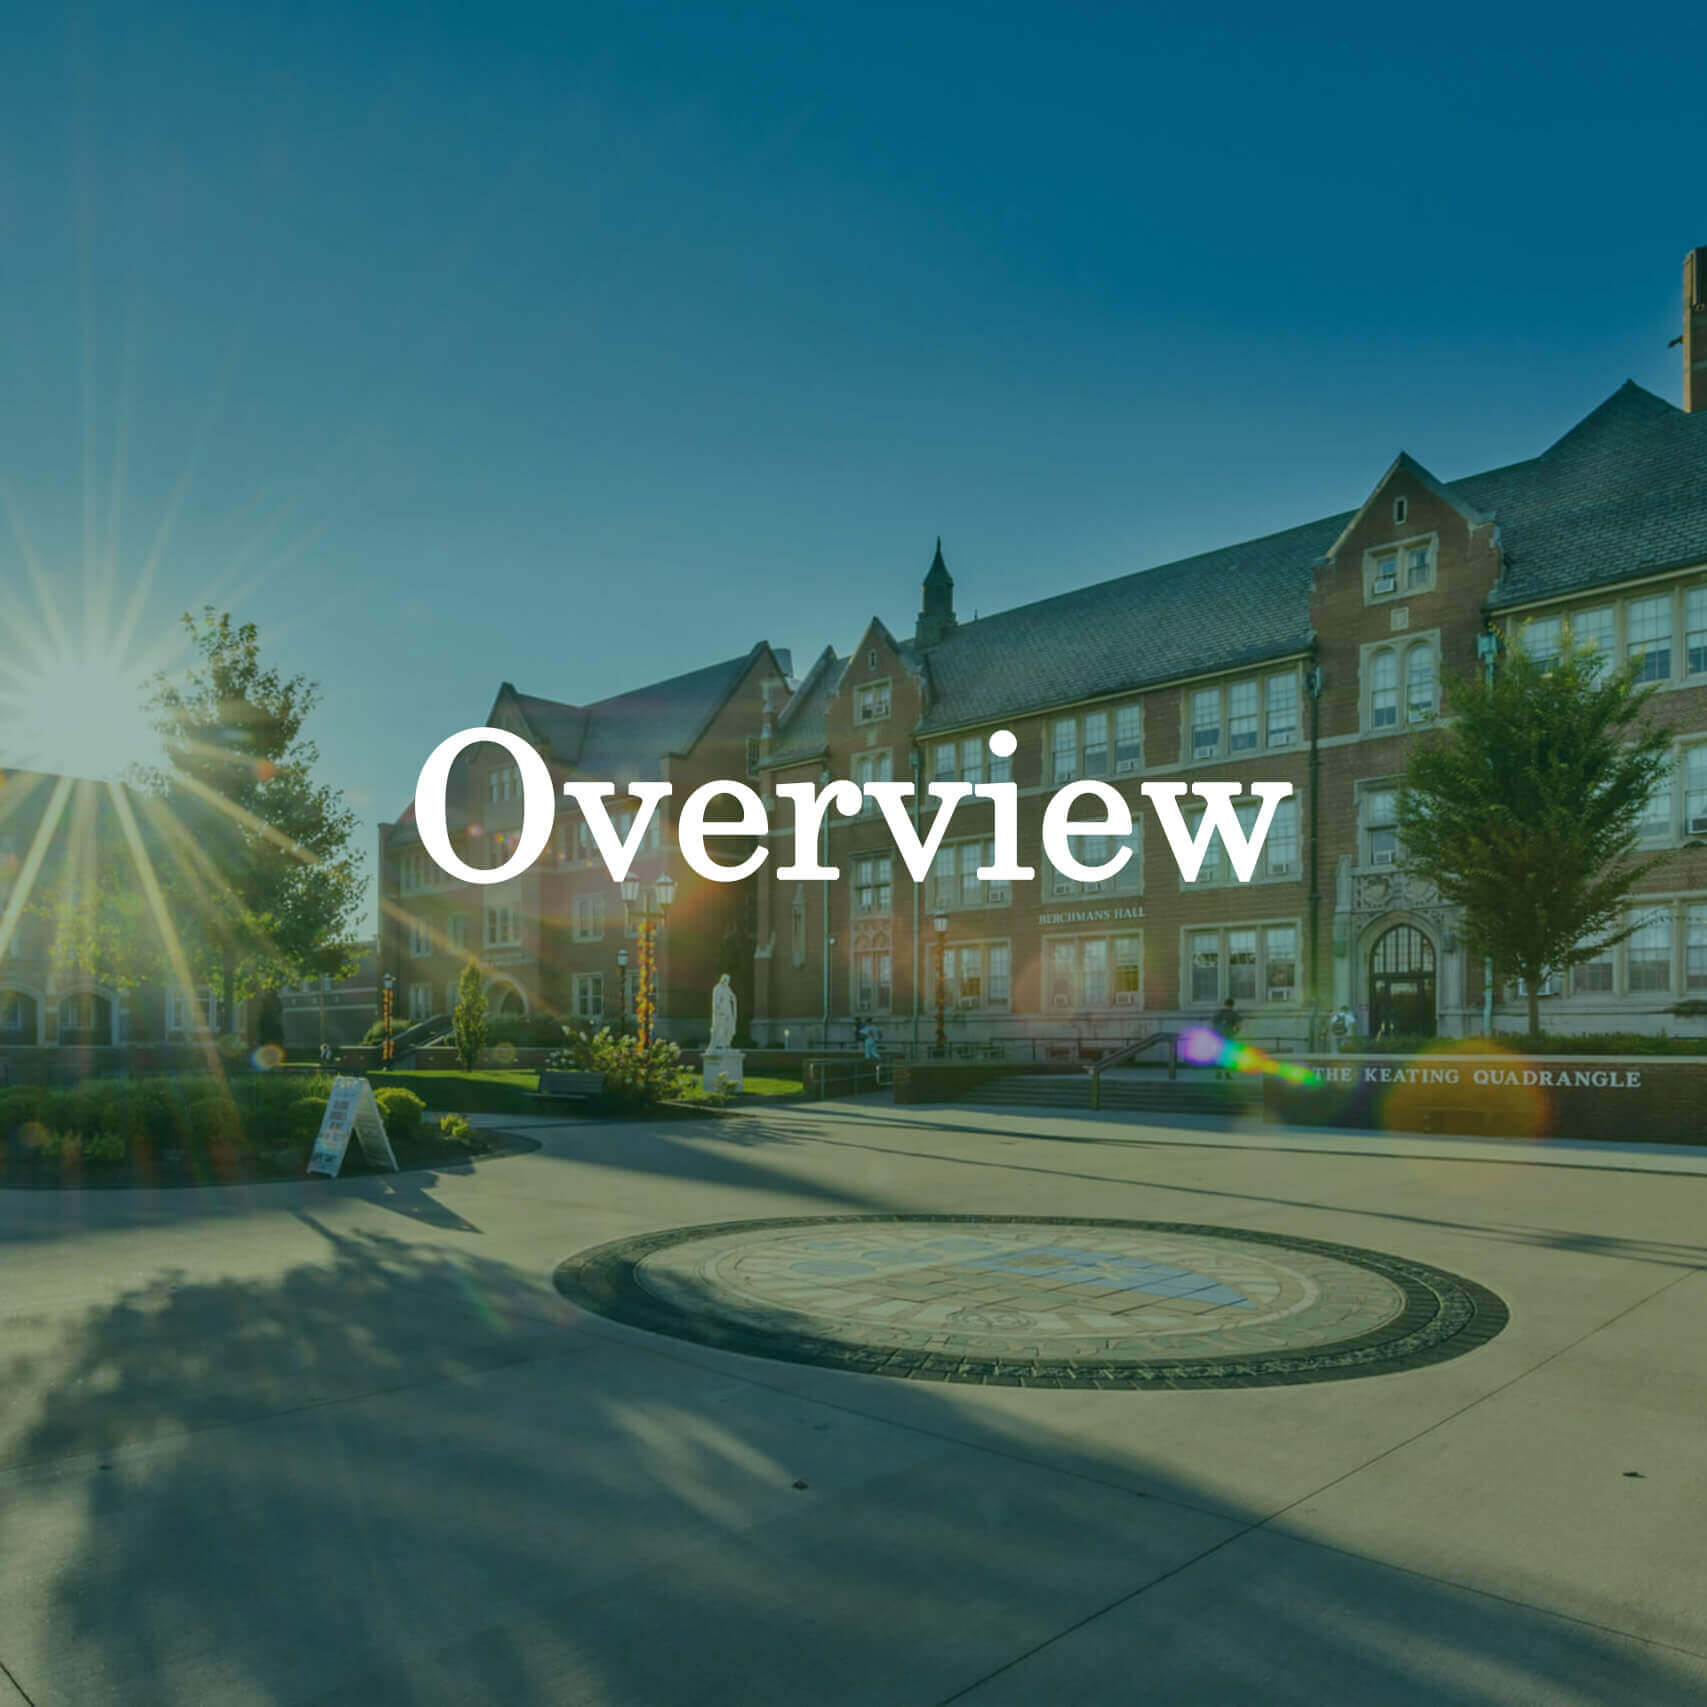 """Photo of the college seal on Keating Quad with a text overlay that reads """"Overview."""""""